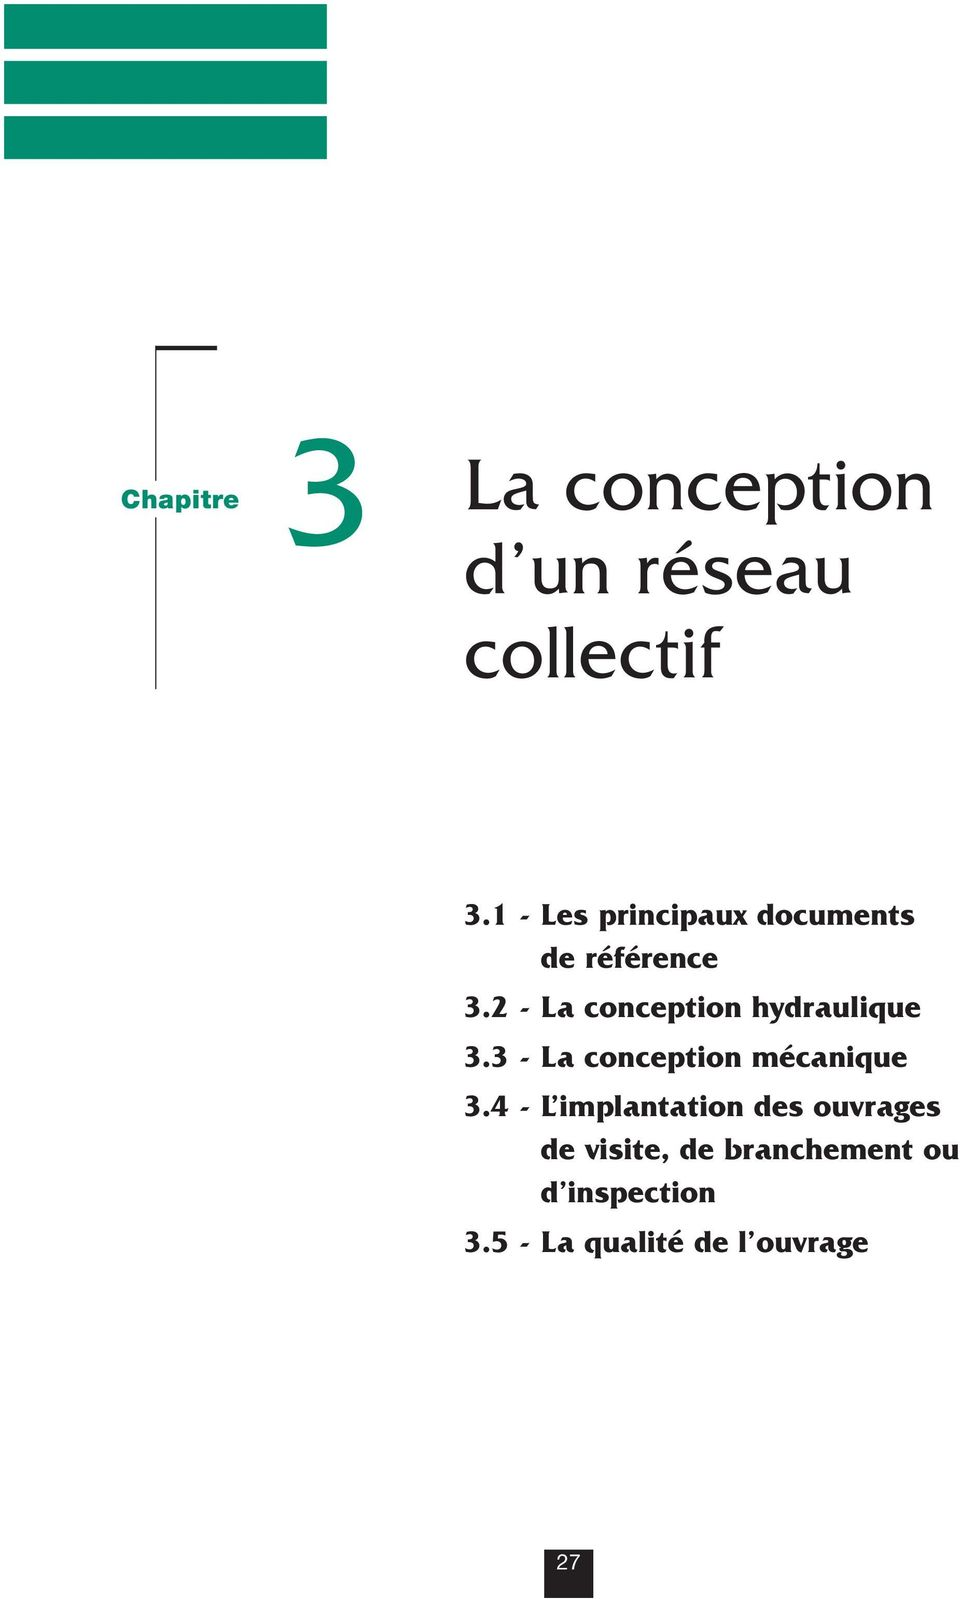 2 - La conception hydraulique 3.3 - La conception mécanique 3.